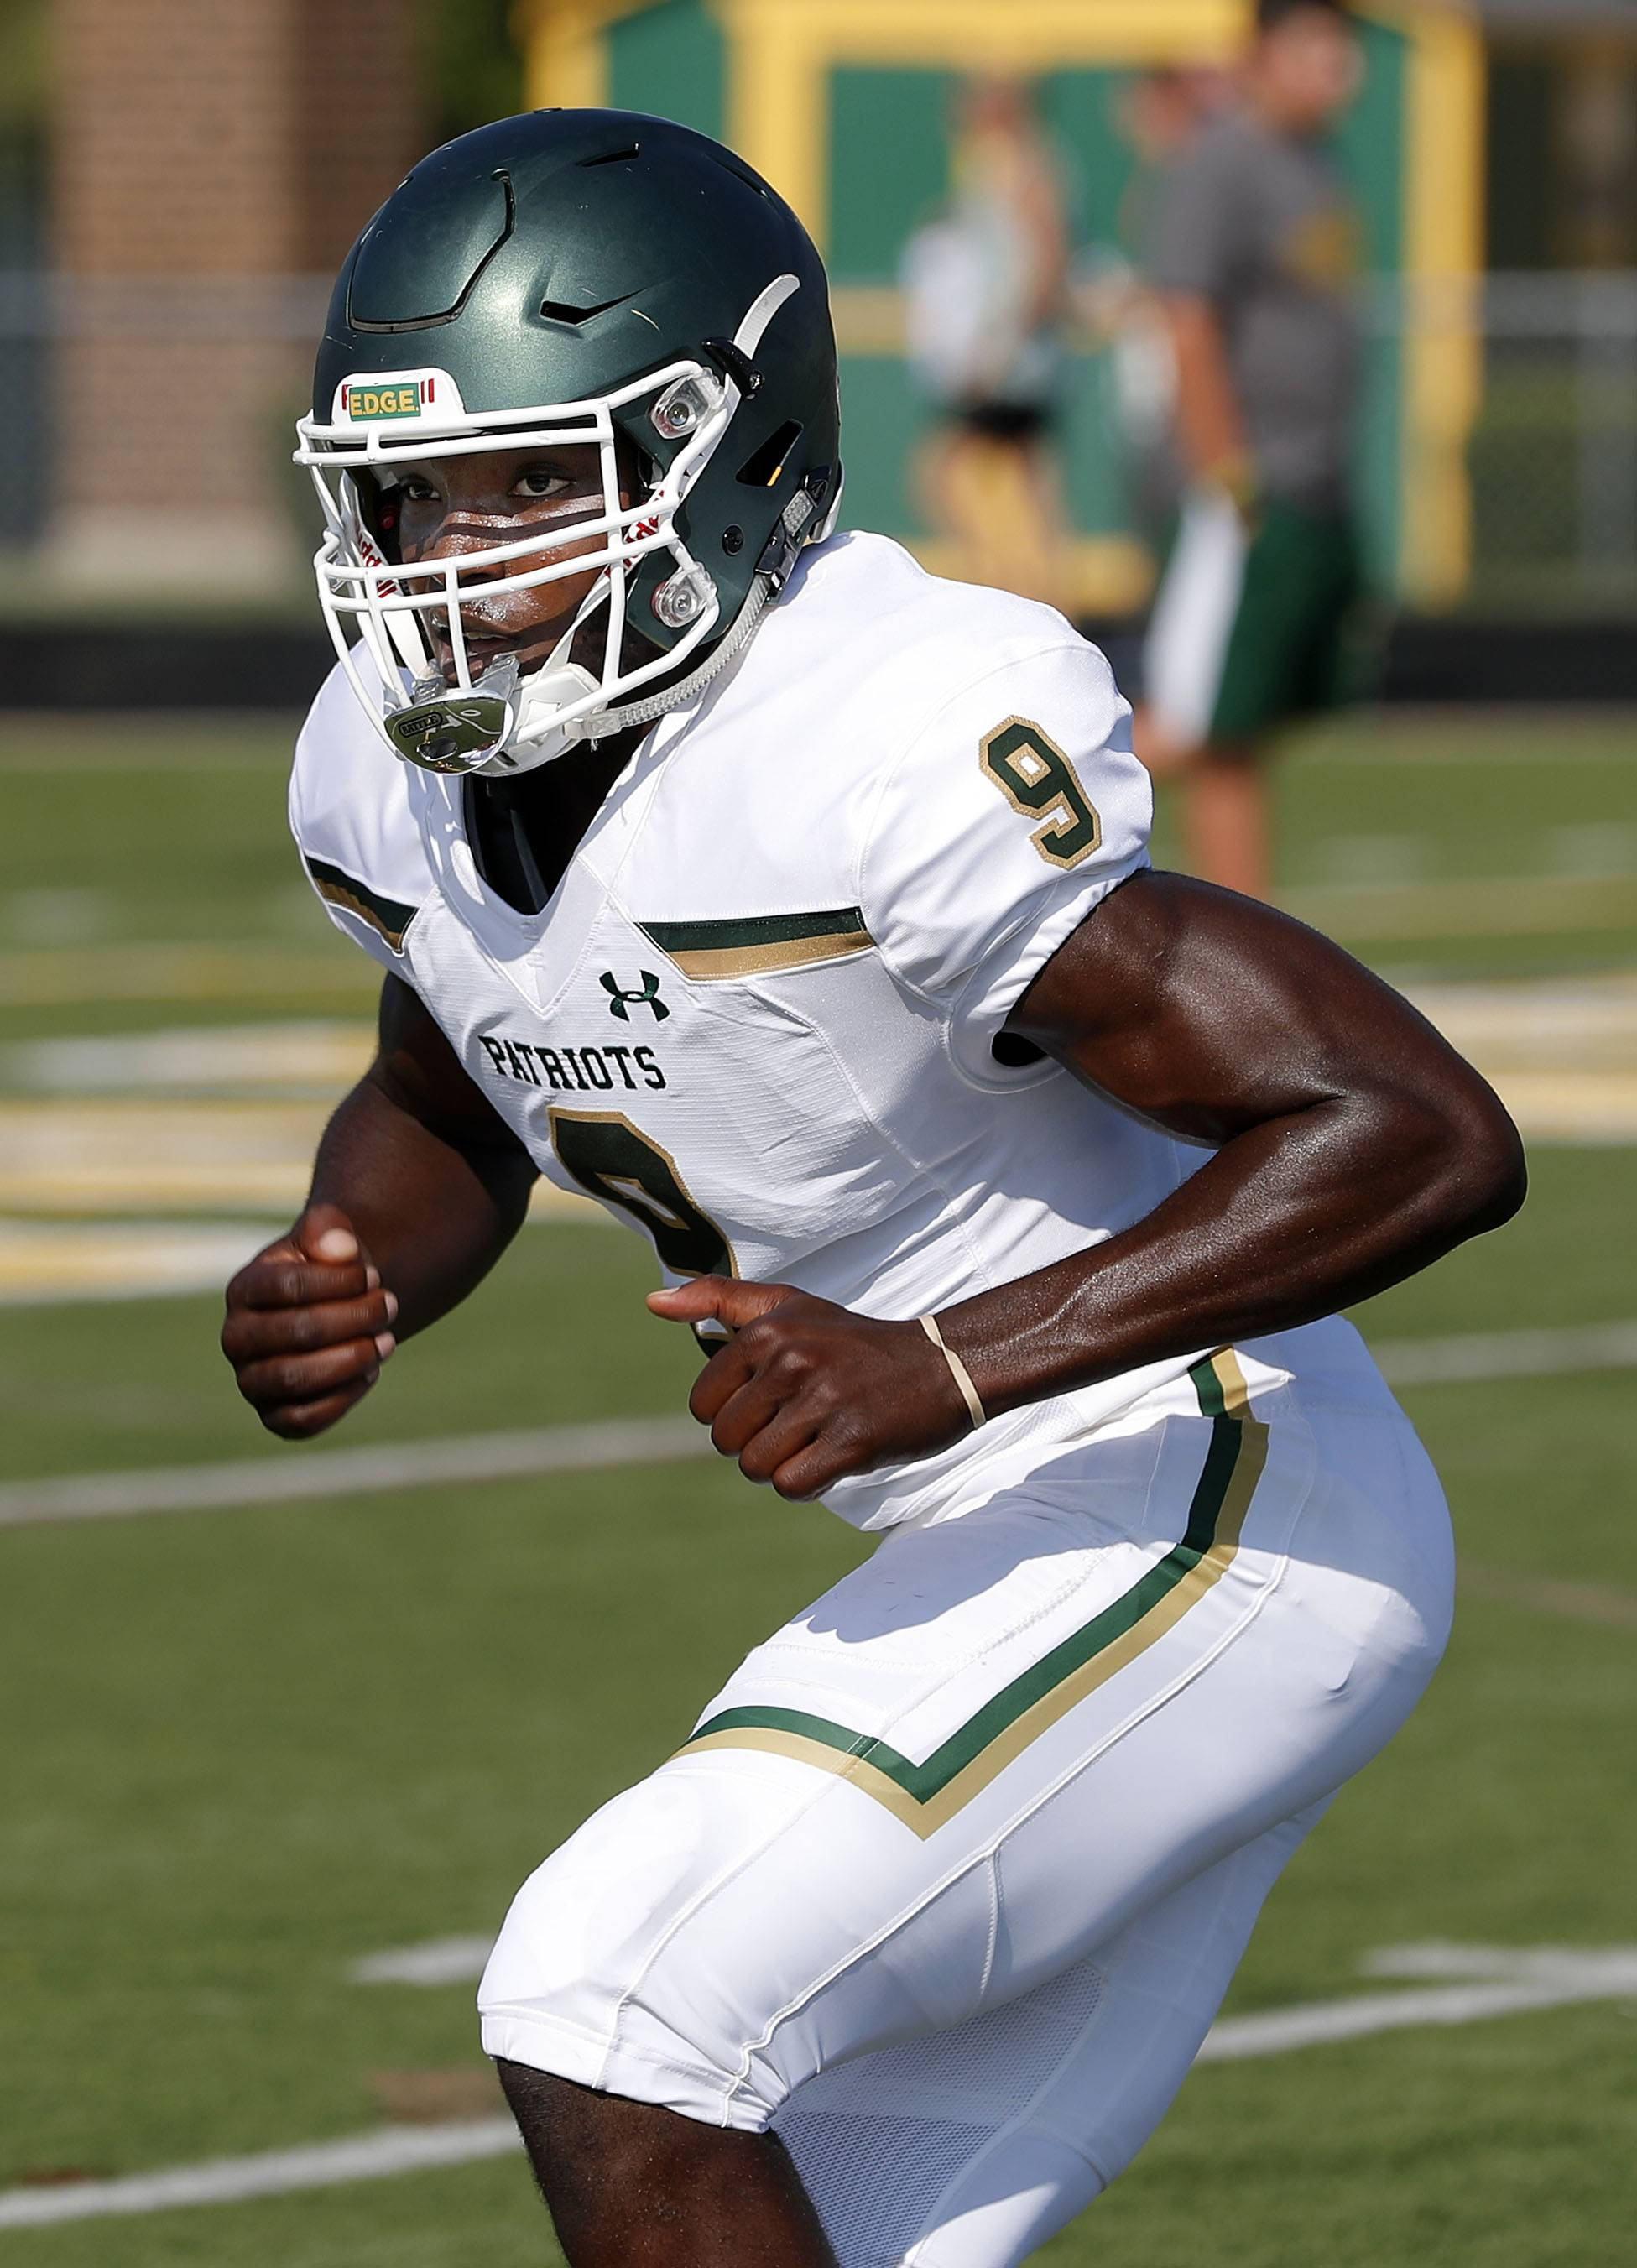 Stevenson linebacker Maema Njongmeta had more than 20 college scholarship offers before verbally committing to the University of Wisconsin over the weekend.